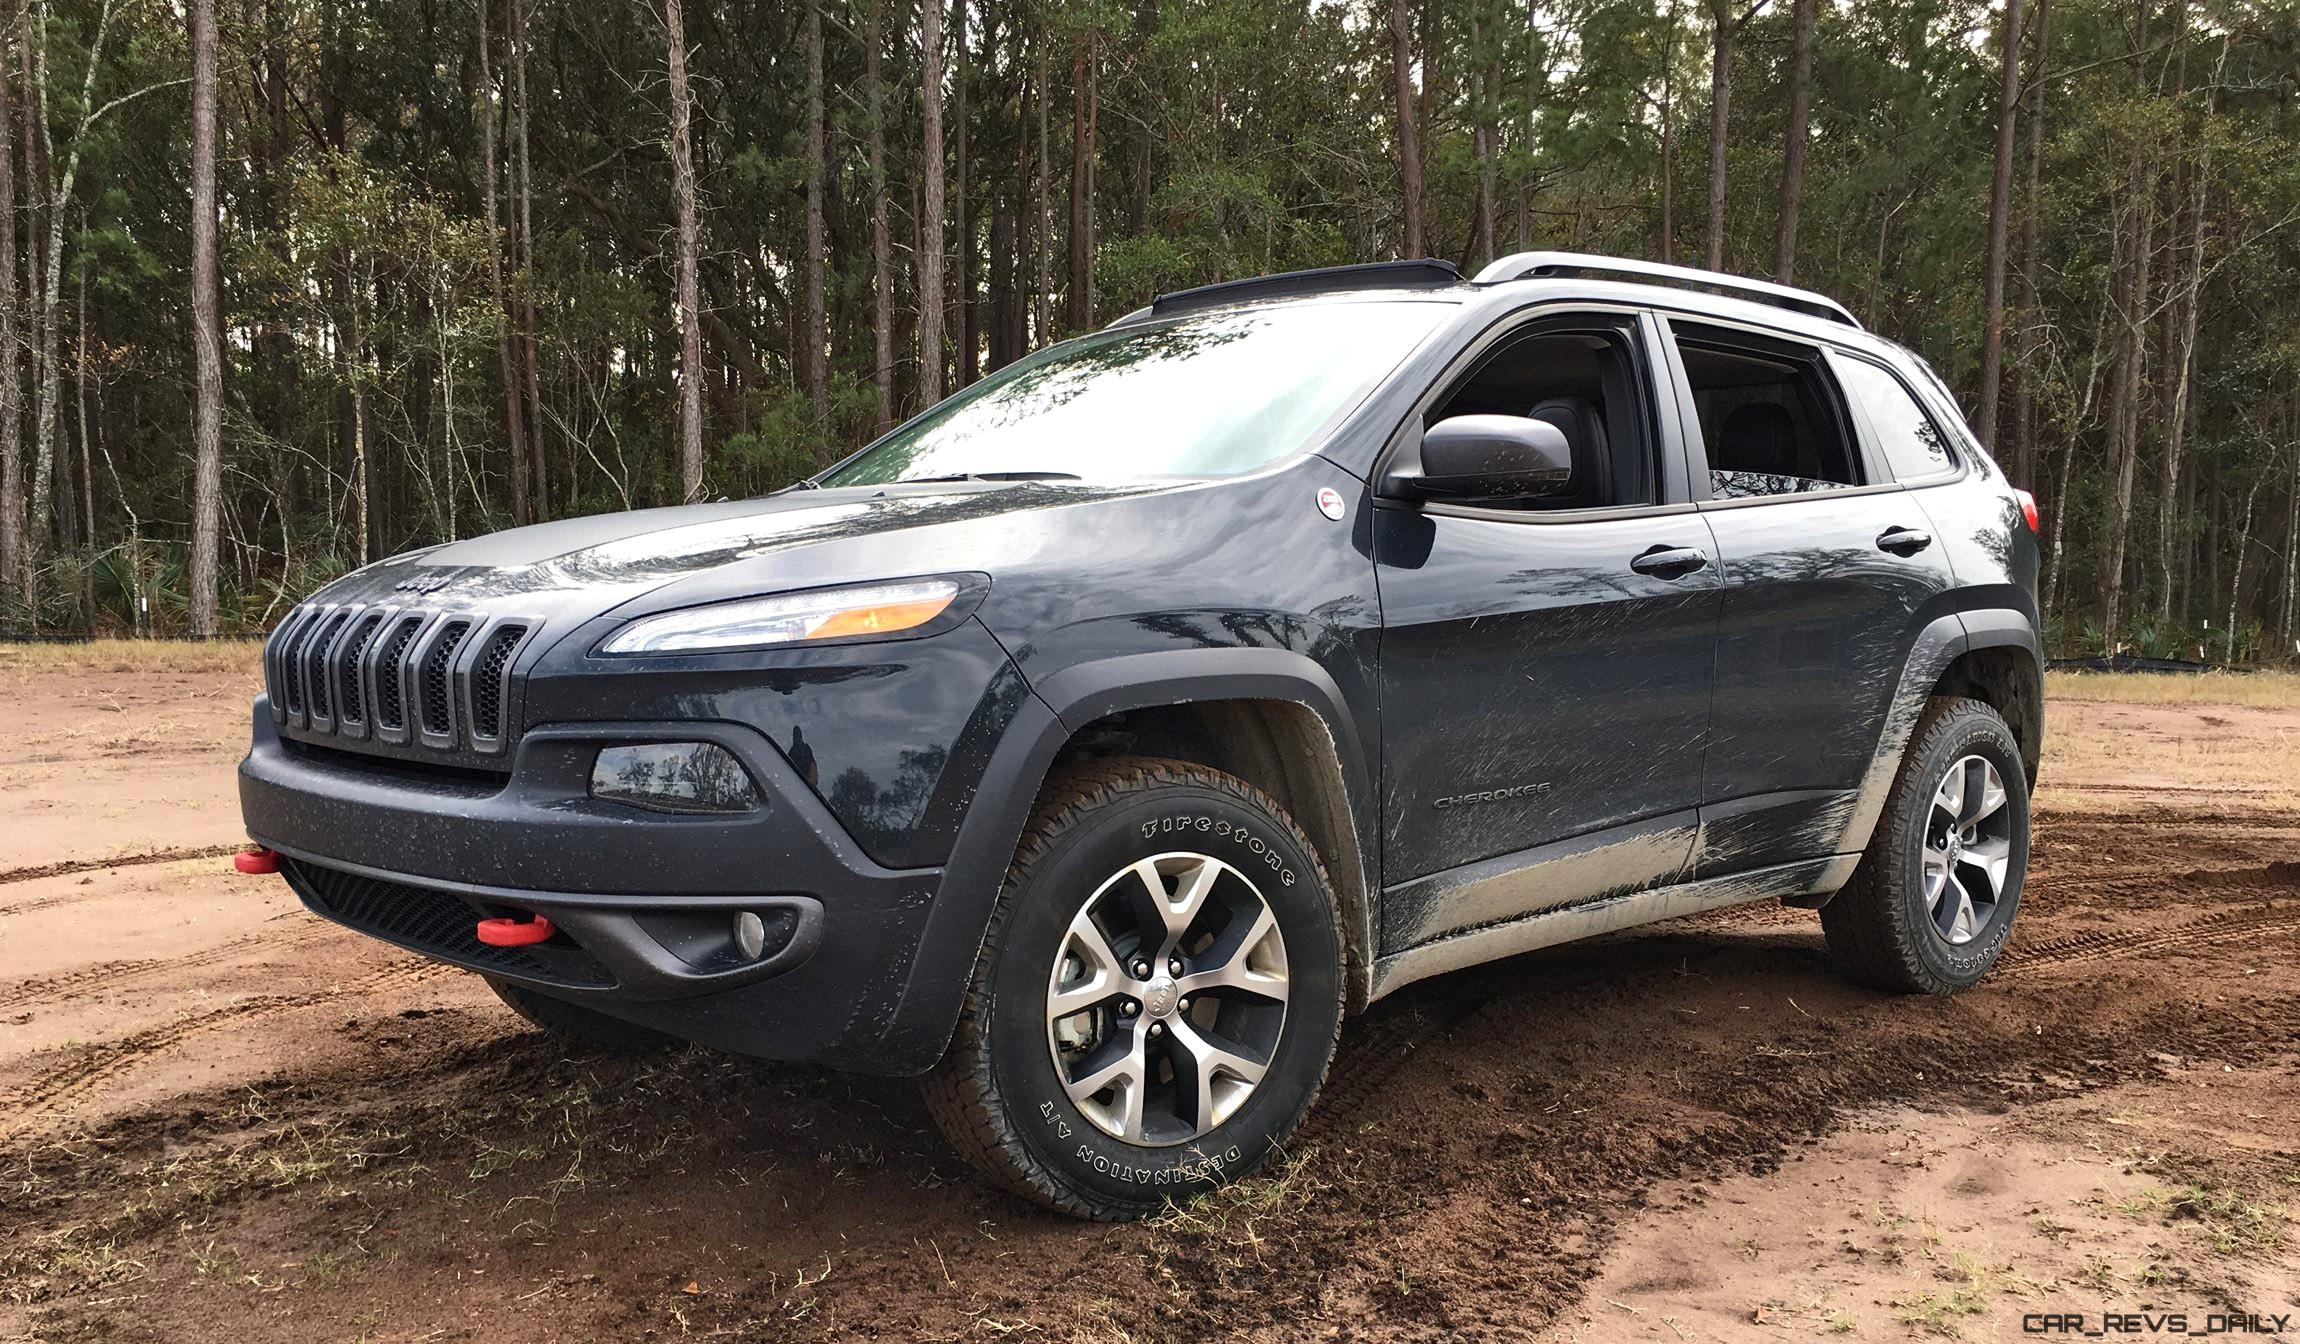 2017 jeep cherokee trailhawk hd road test review plus 2 videos. Black Bedroom Furniture Sets. Home Design Ideas